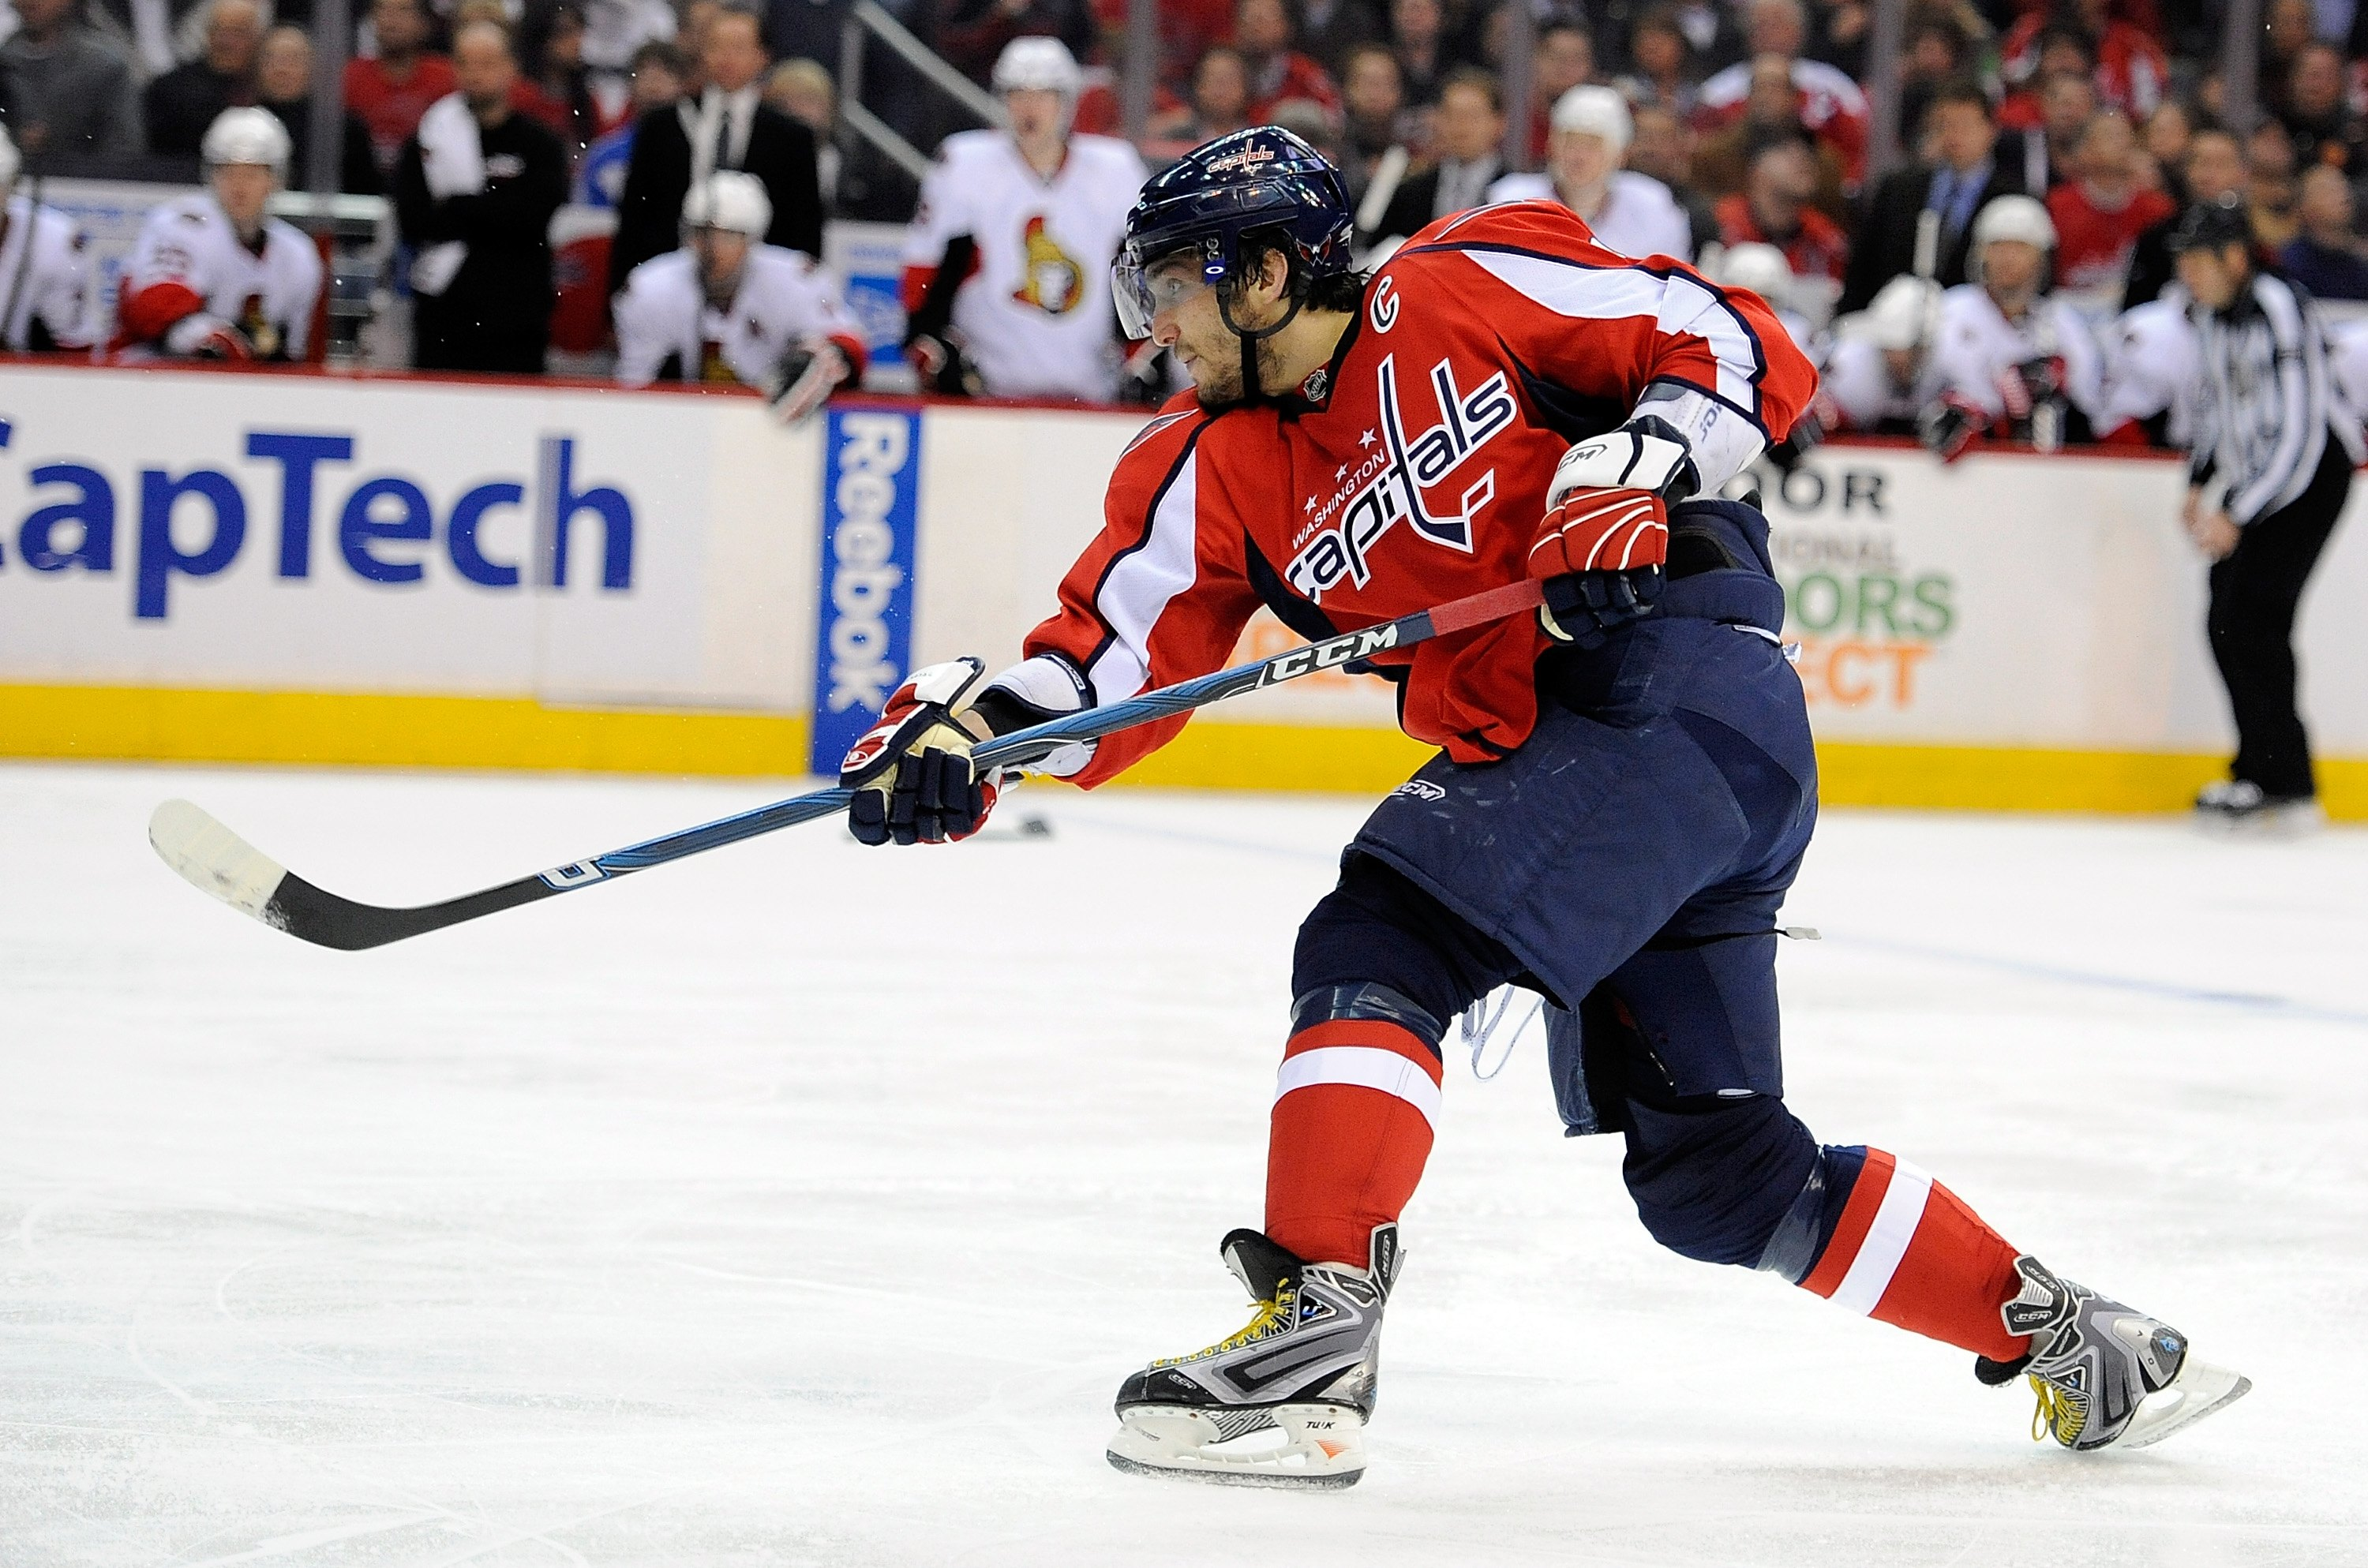 WASHINGTON - MARCH 30:  Alex Ovechkin #8 of the Washington Capitals shoots the puck against the Ottawa Senators at the Verizon Center on March 30, 2010 in Washington, DC.  (Photo by Greg Fiume/Getty Images)